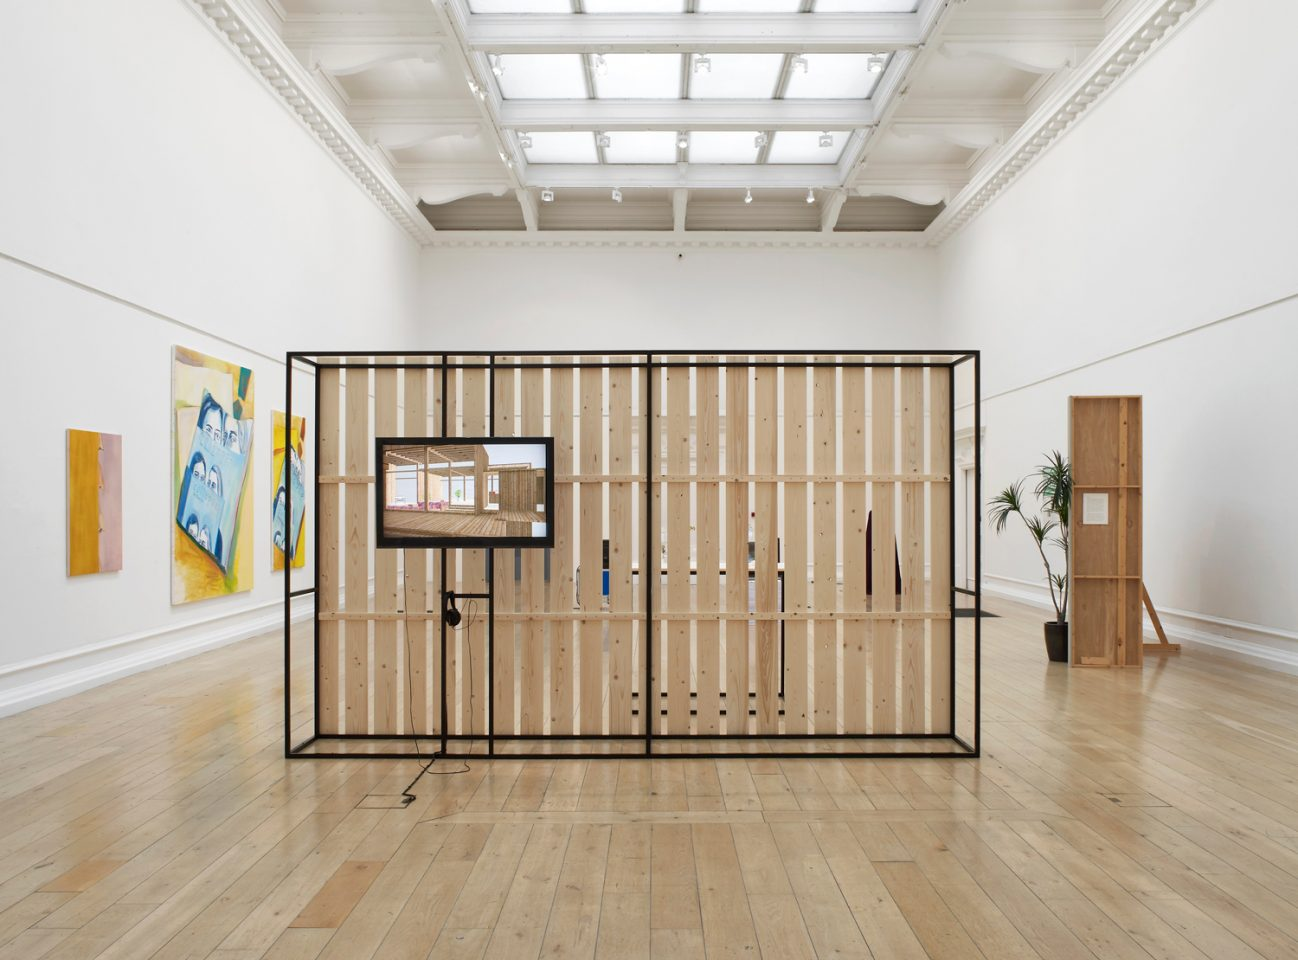 Installation view of Last Seen Entering the Biltmore, in the Main Galleries, 2014. Photo: Andy Keate